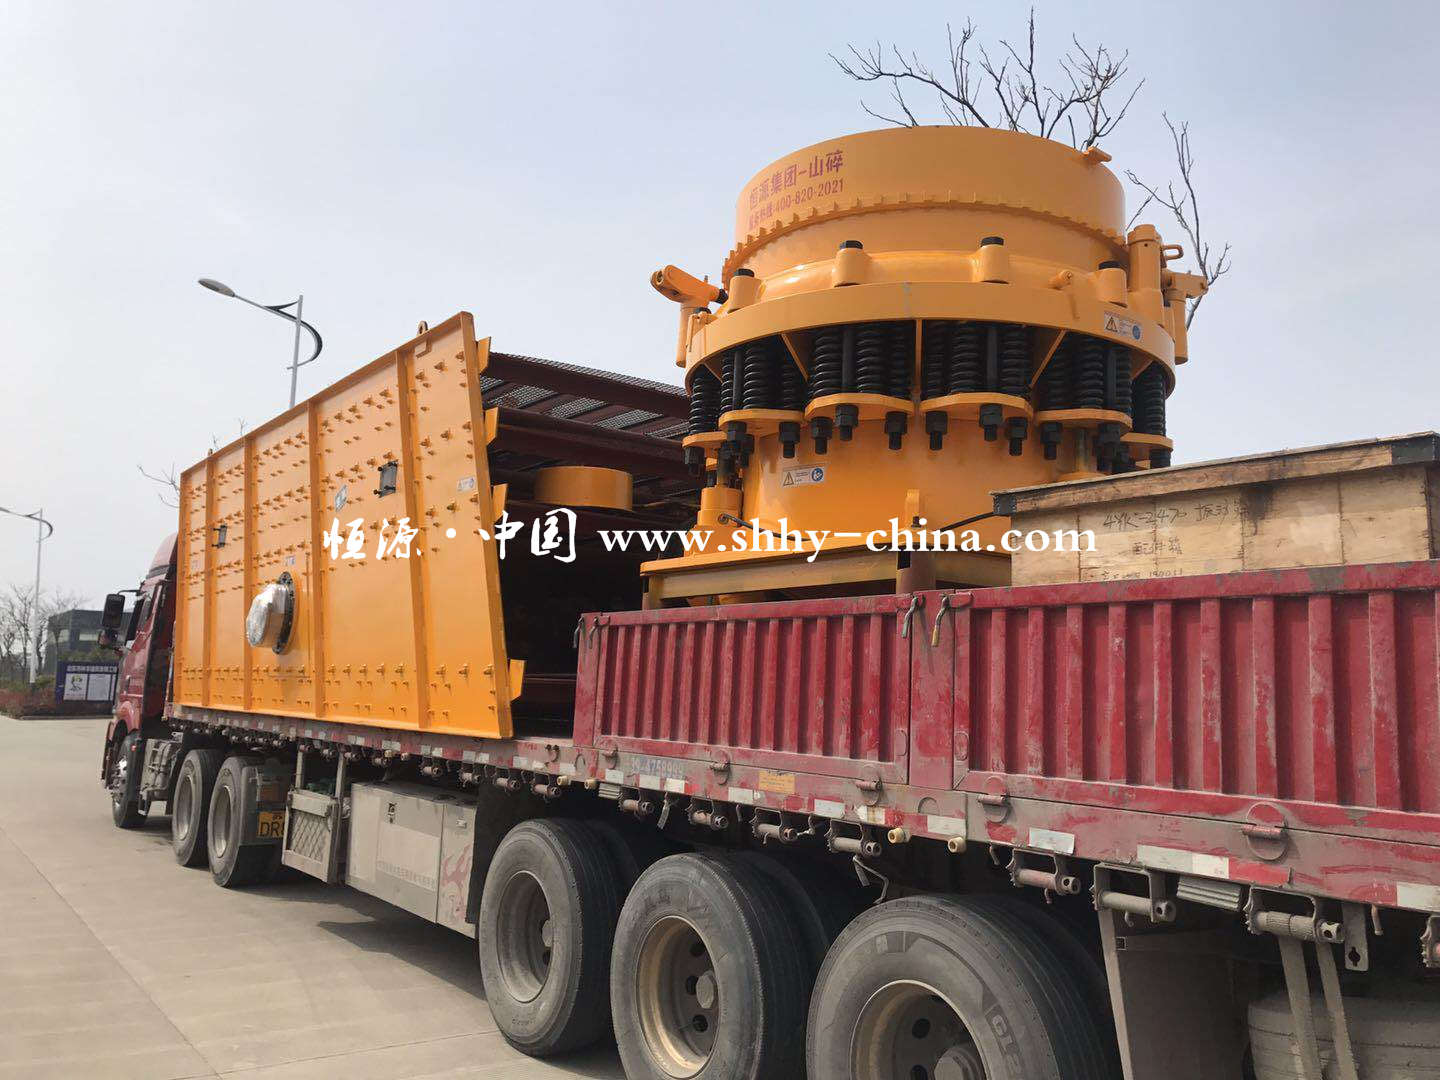 Equipment Delivery of Sandstone Production Line - Hengyuan C